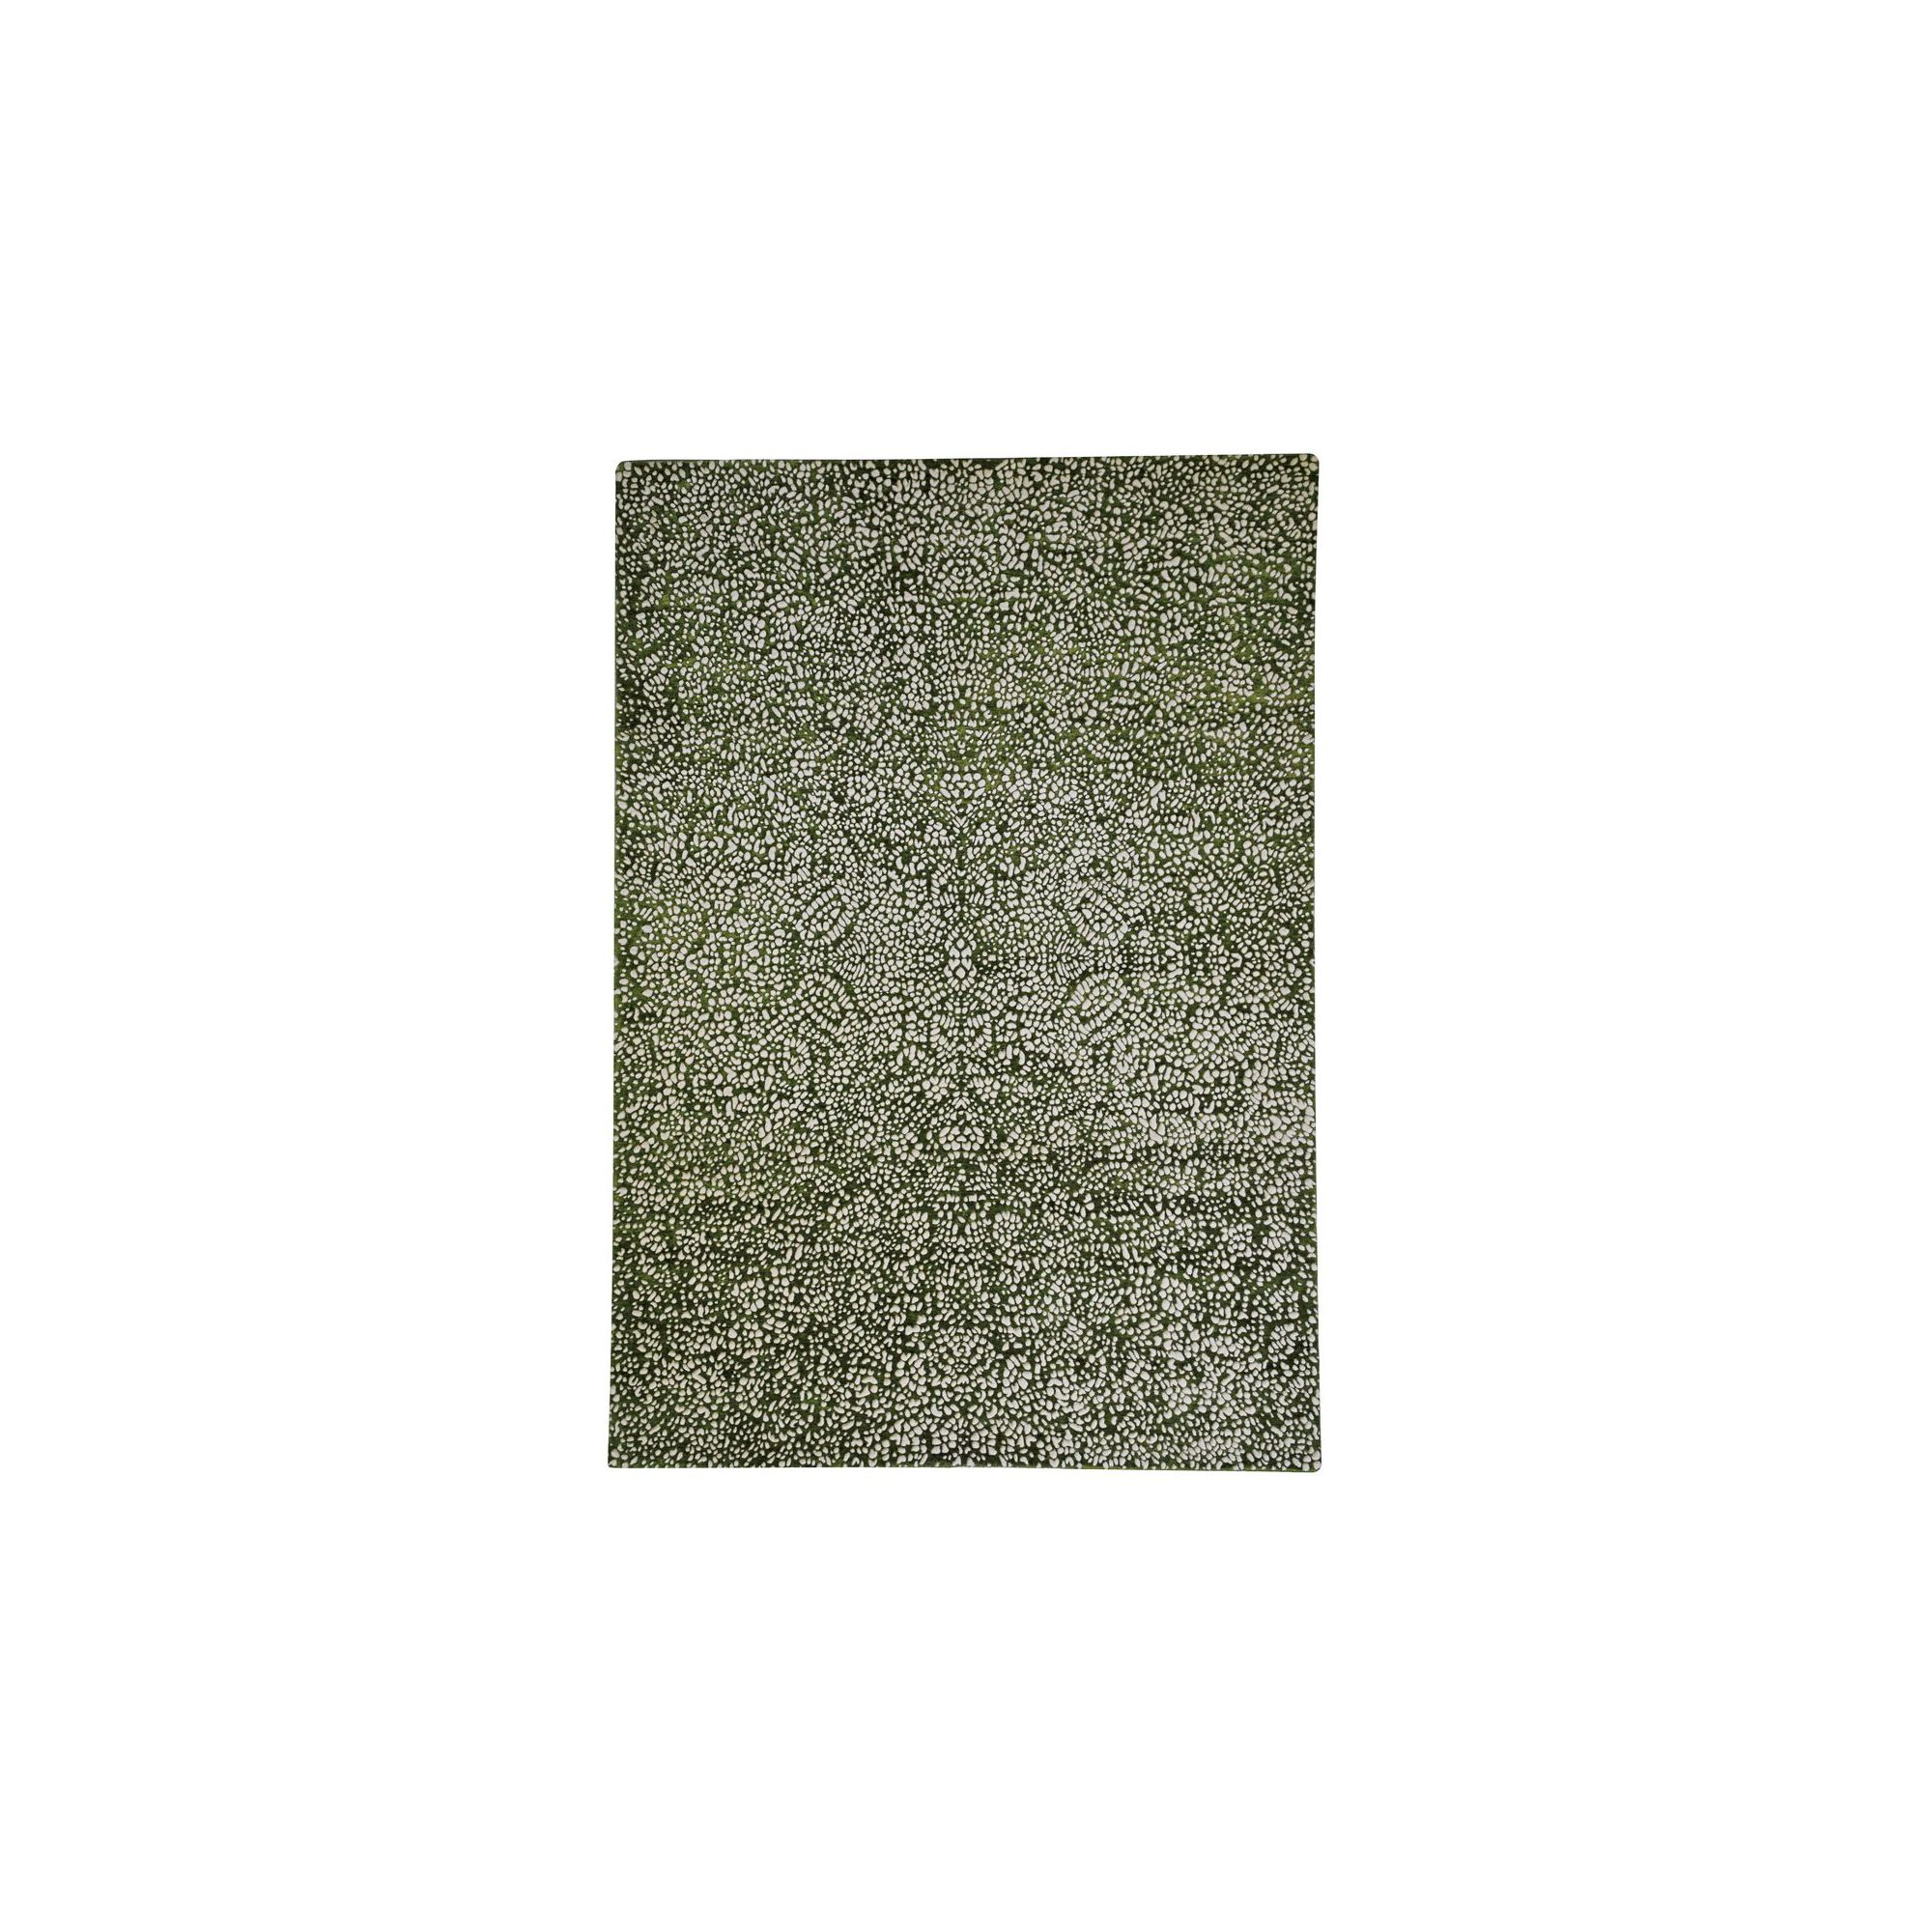 I + I Editions Trace Knotted Rug - 240cm x 170cm at Tesco Direct